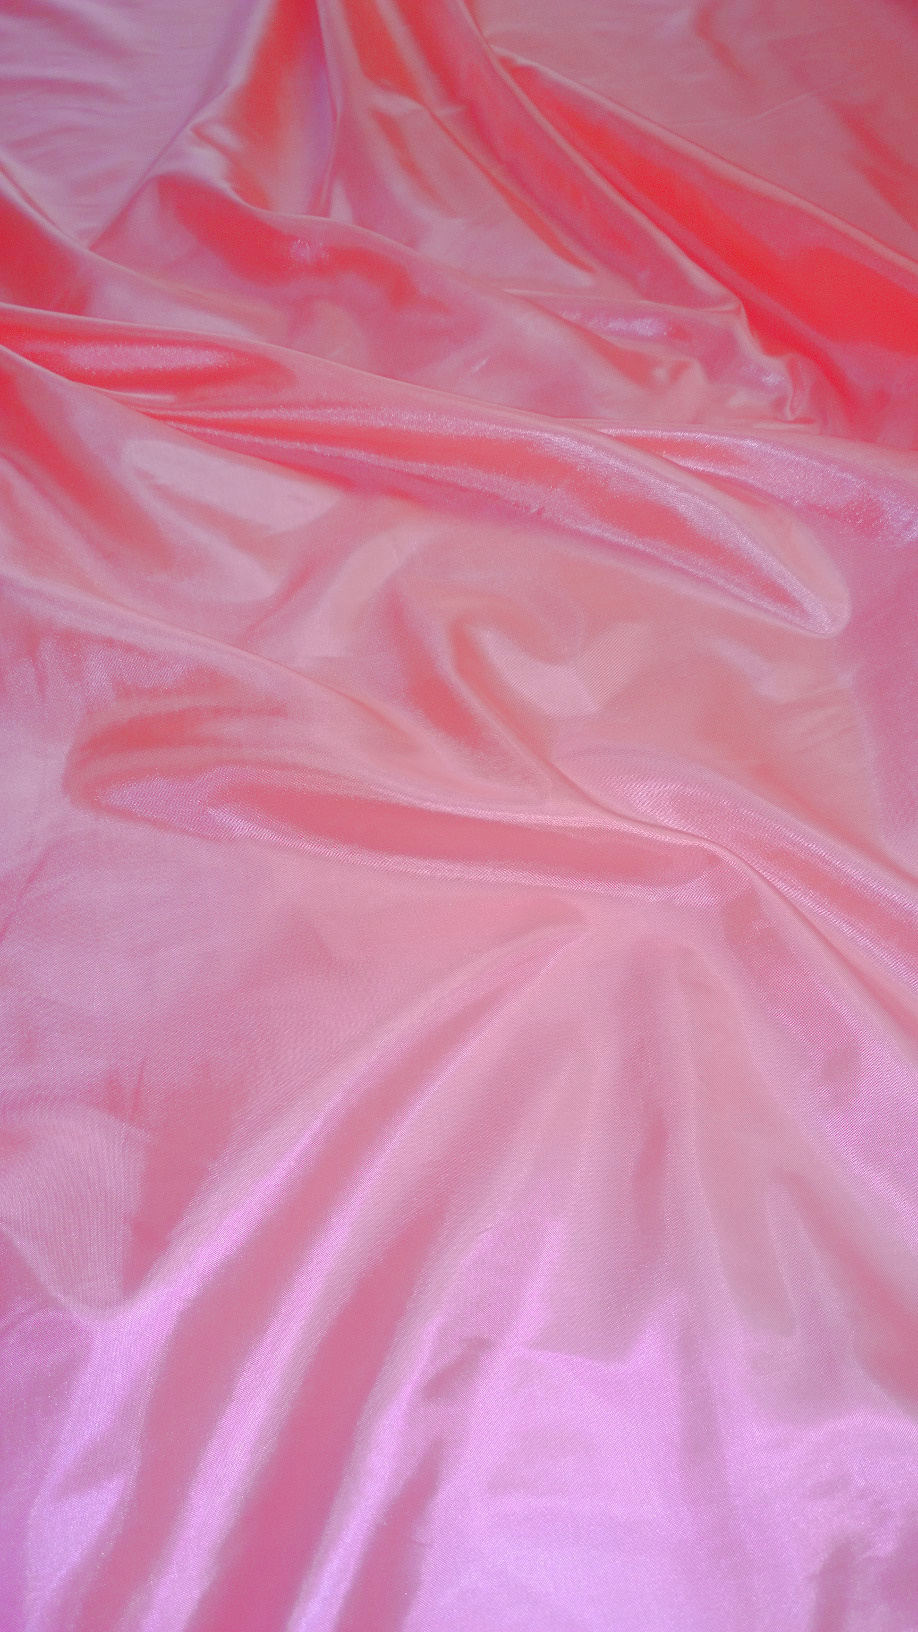 "Neon Pink Habotai Fabric 60"" - By The Yard"